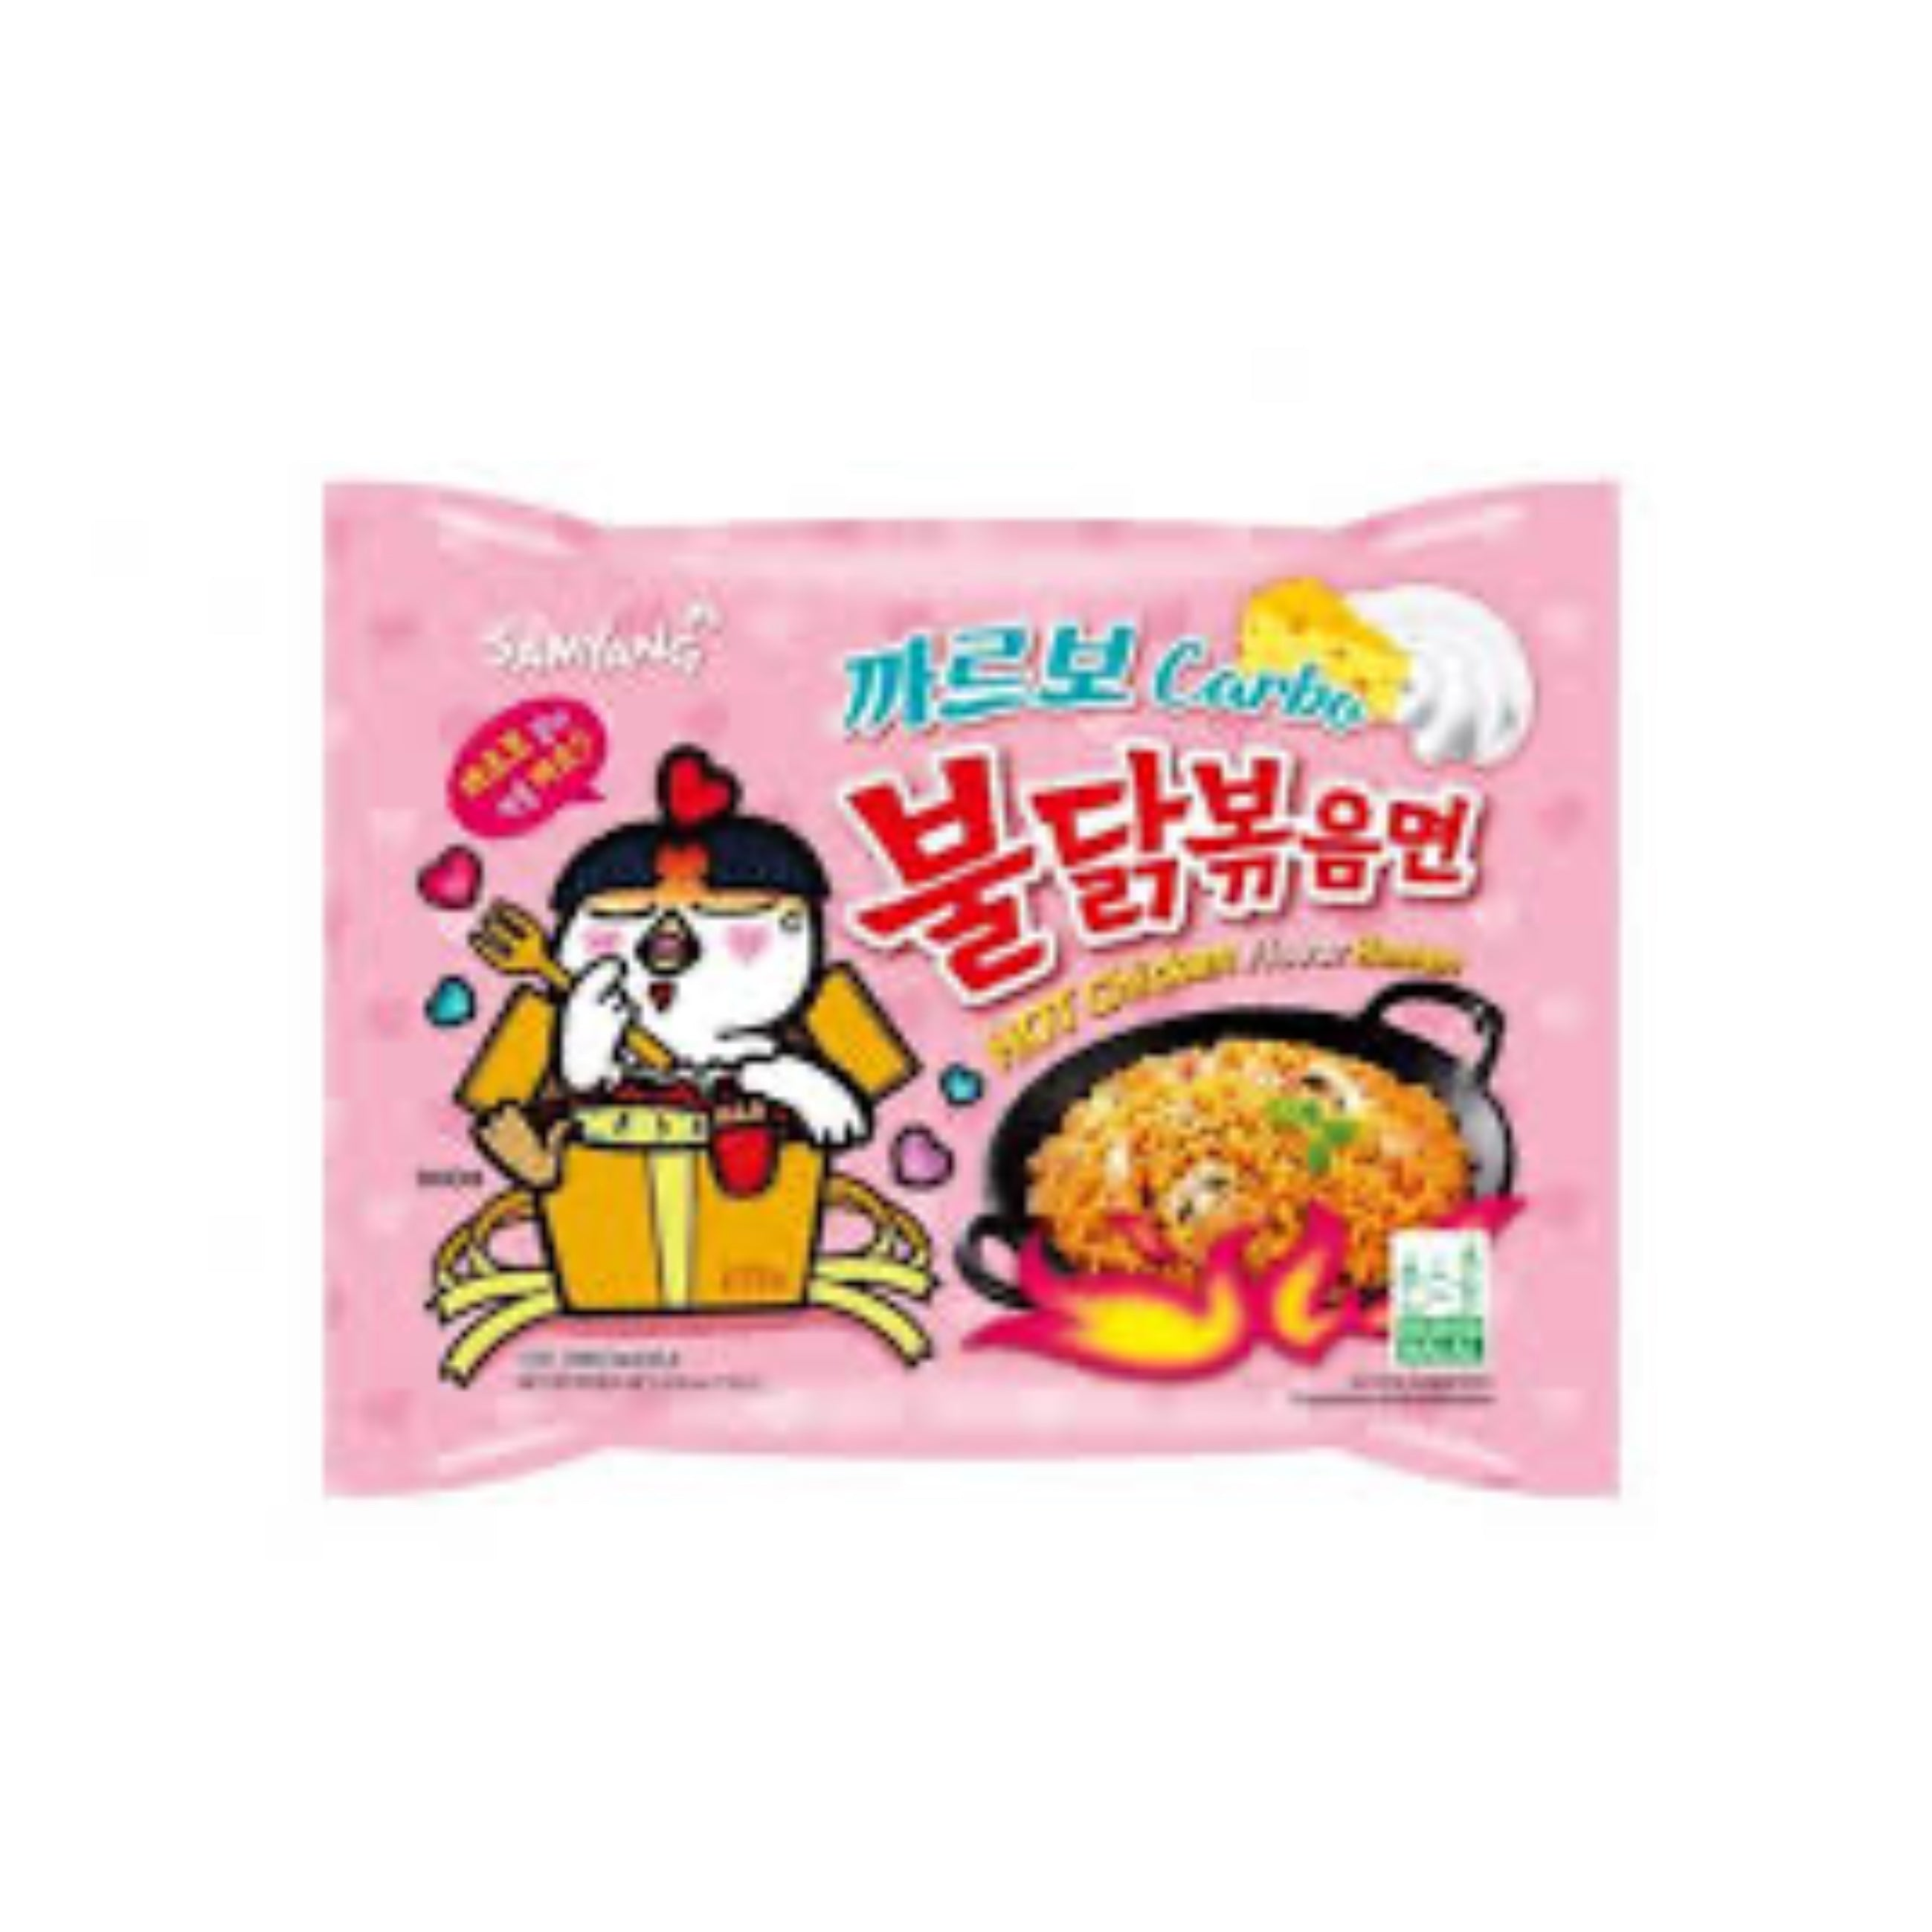 SAMYANG HOT CHICKEN FLAVOR CARBO RAMEN 130g